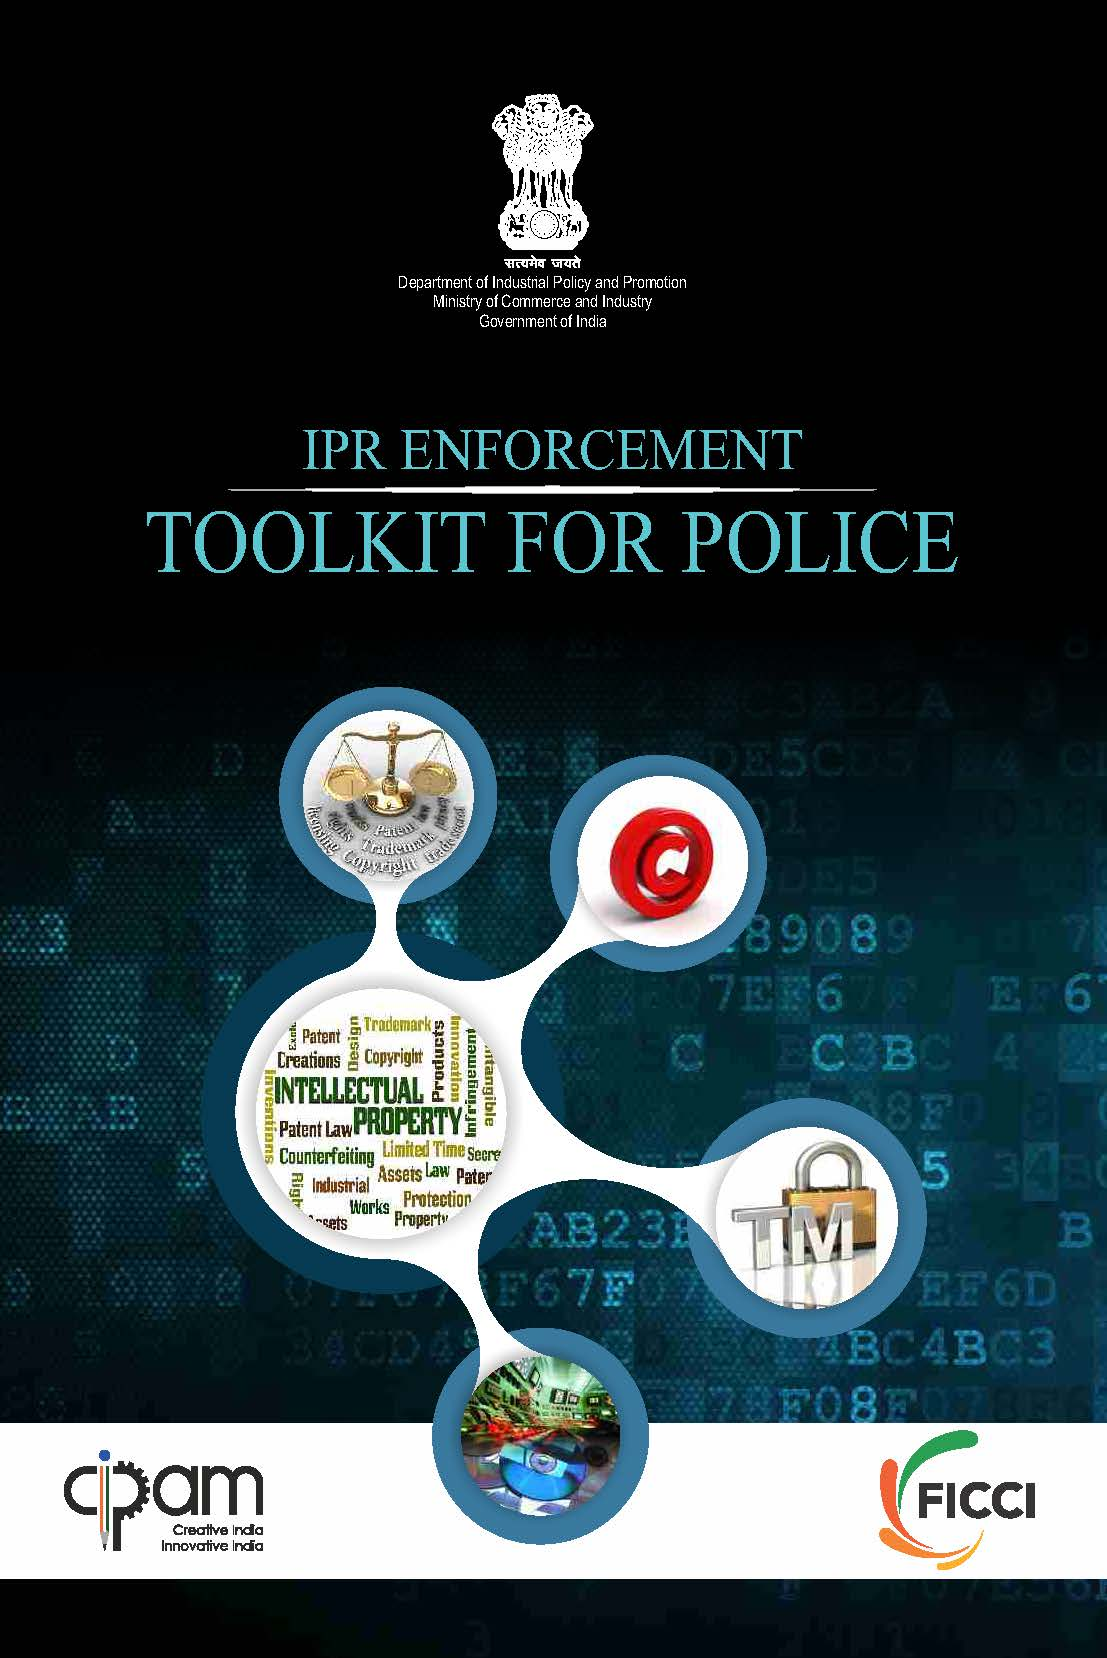 CIPAM's IPR Enforcement Toolkit image